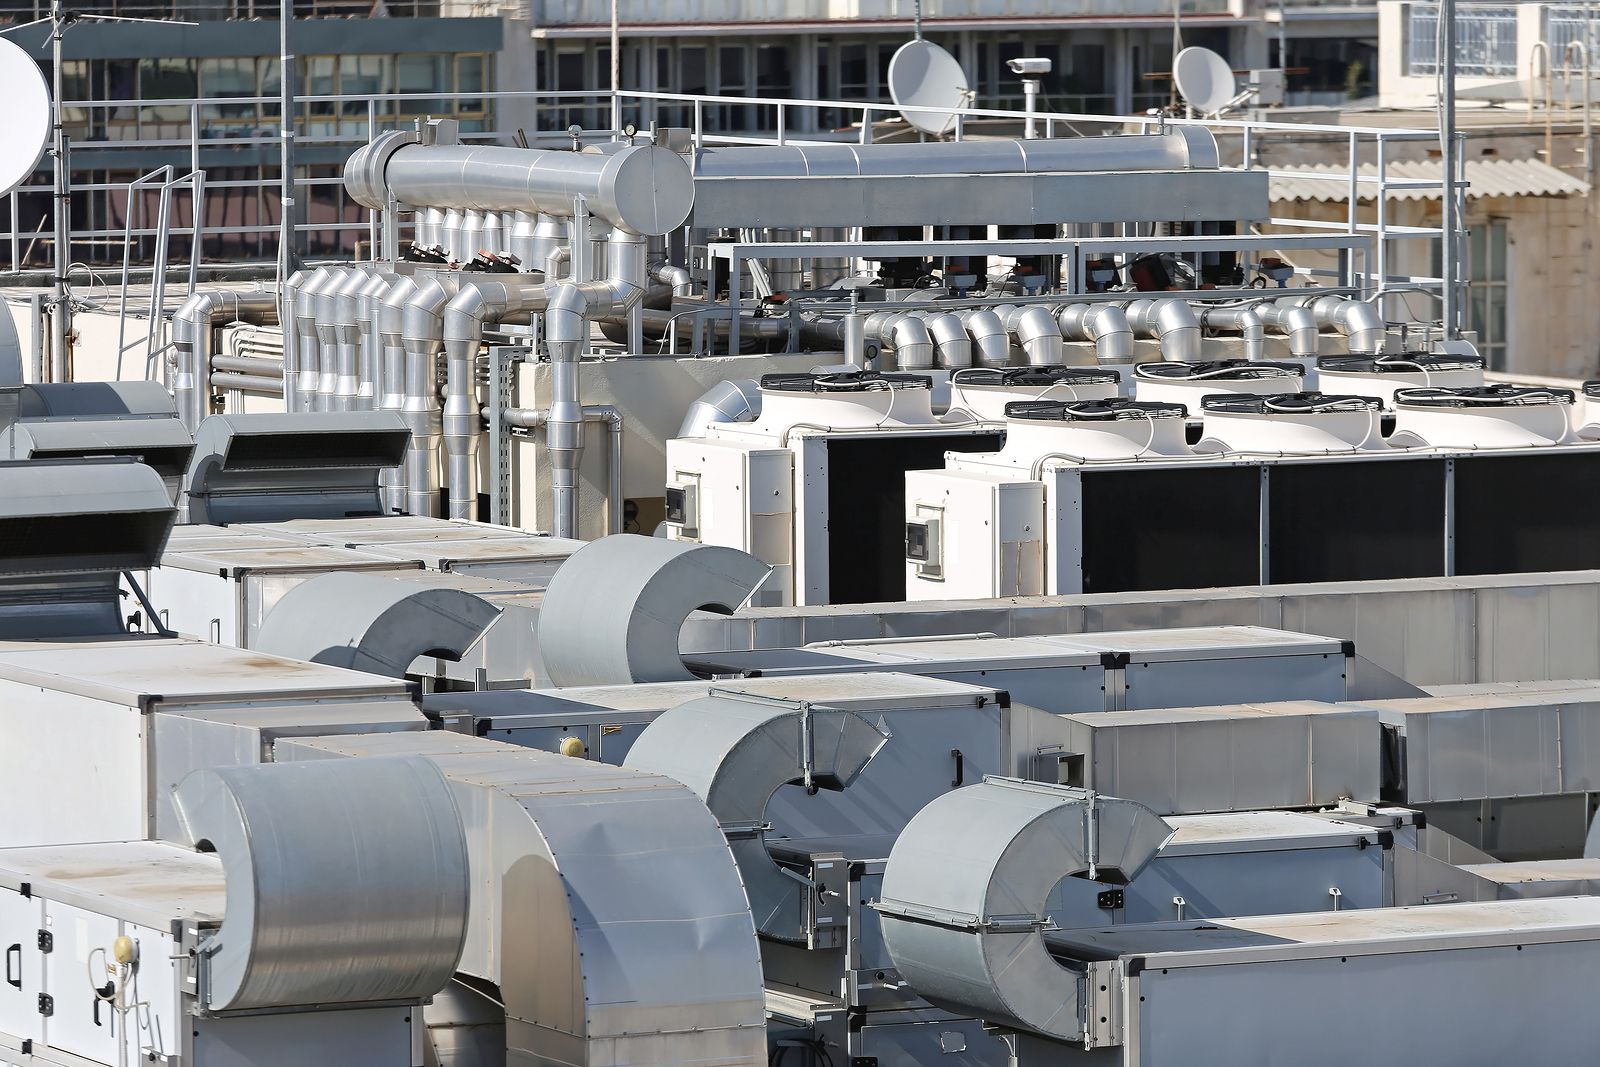 Pin by Joshua Cotter on industrial ac units Ventilation